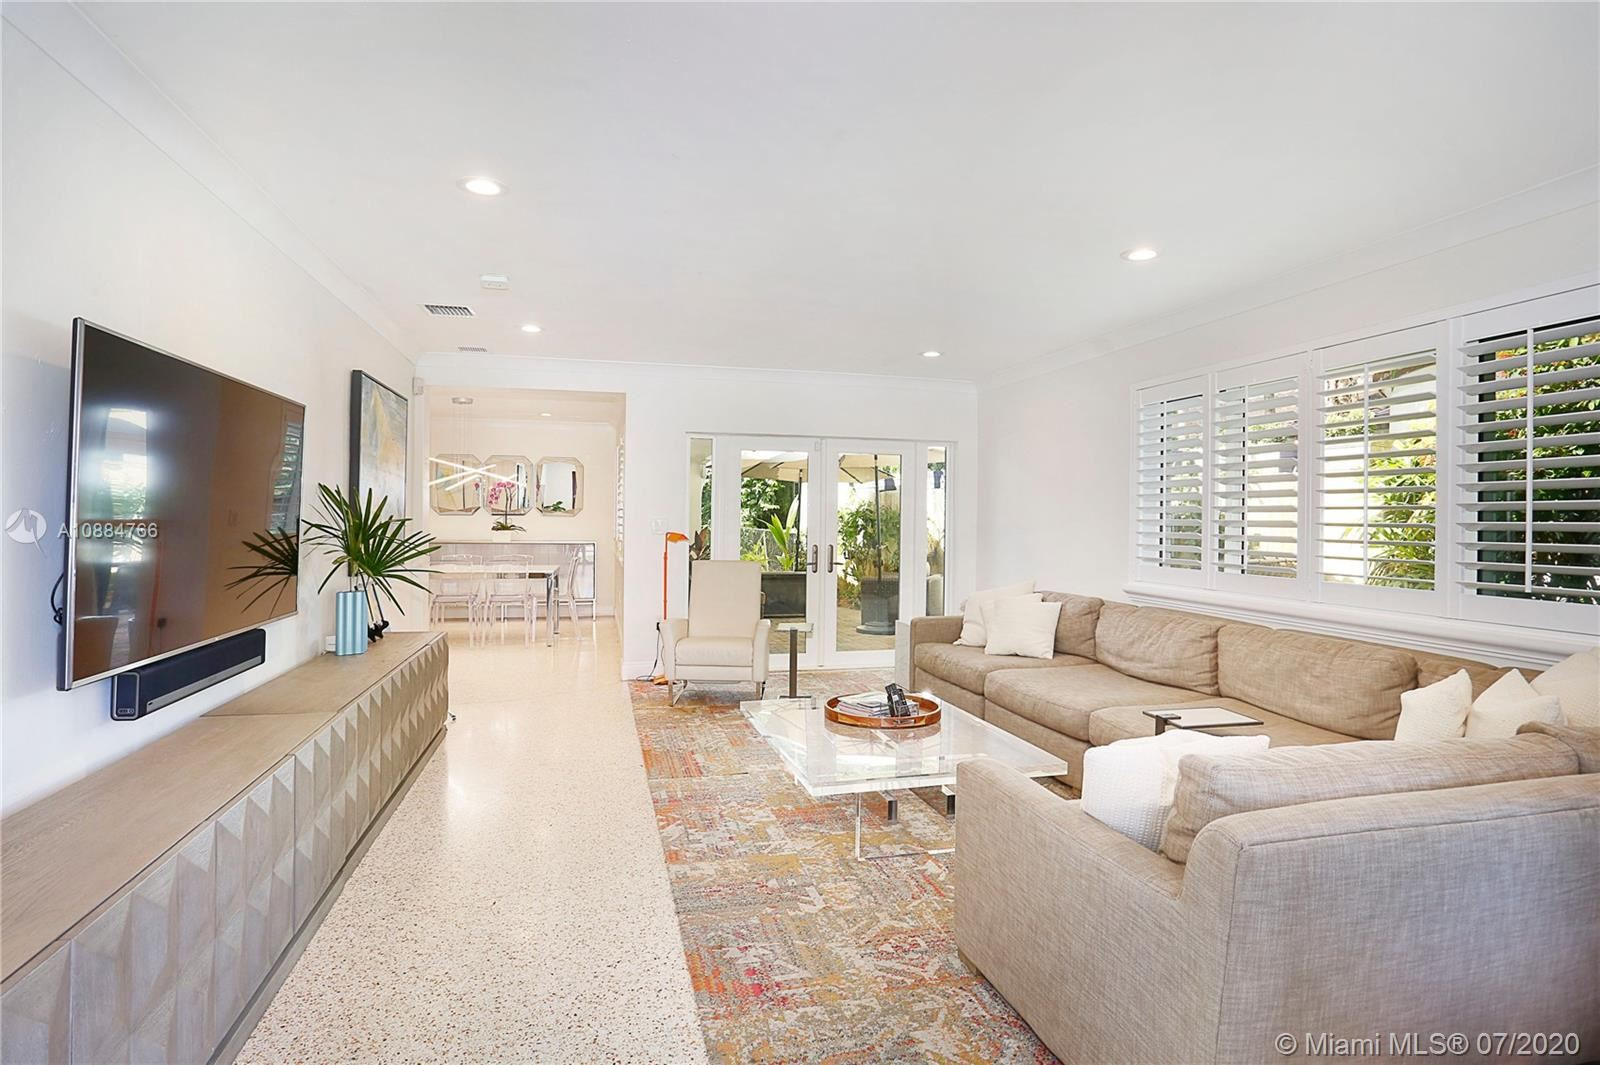 2425 Indian Mound Trl, Coral Gables, FL 33134 - #: A10884766